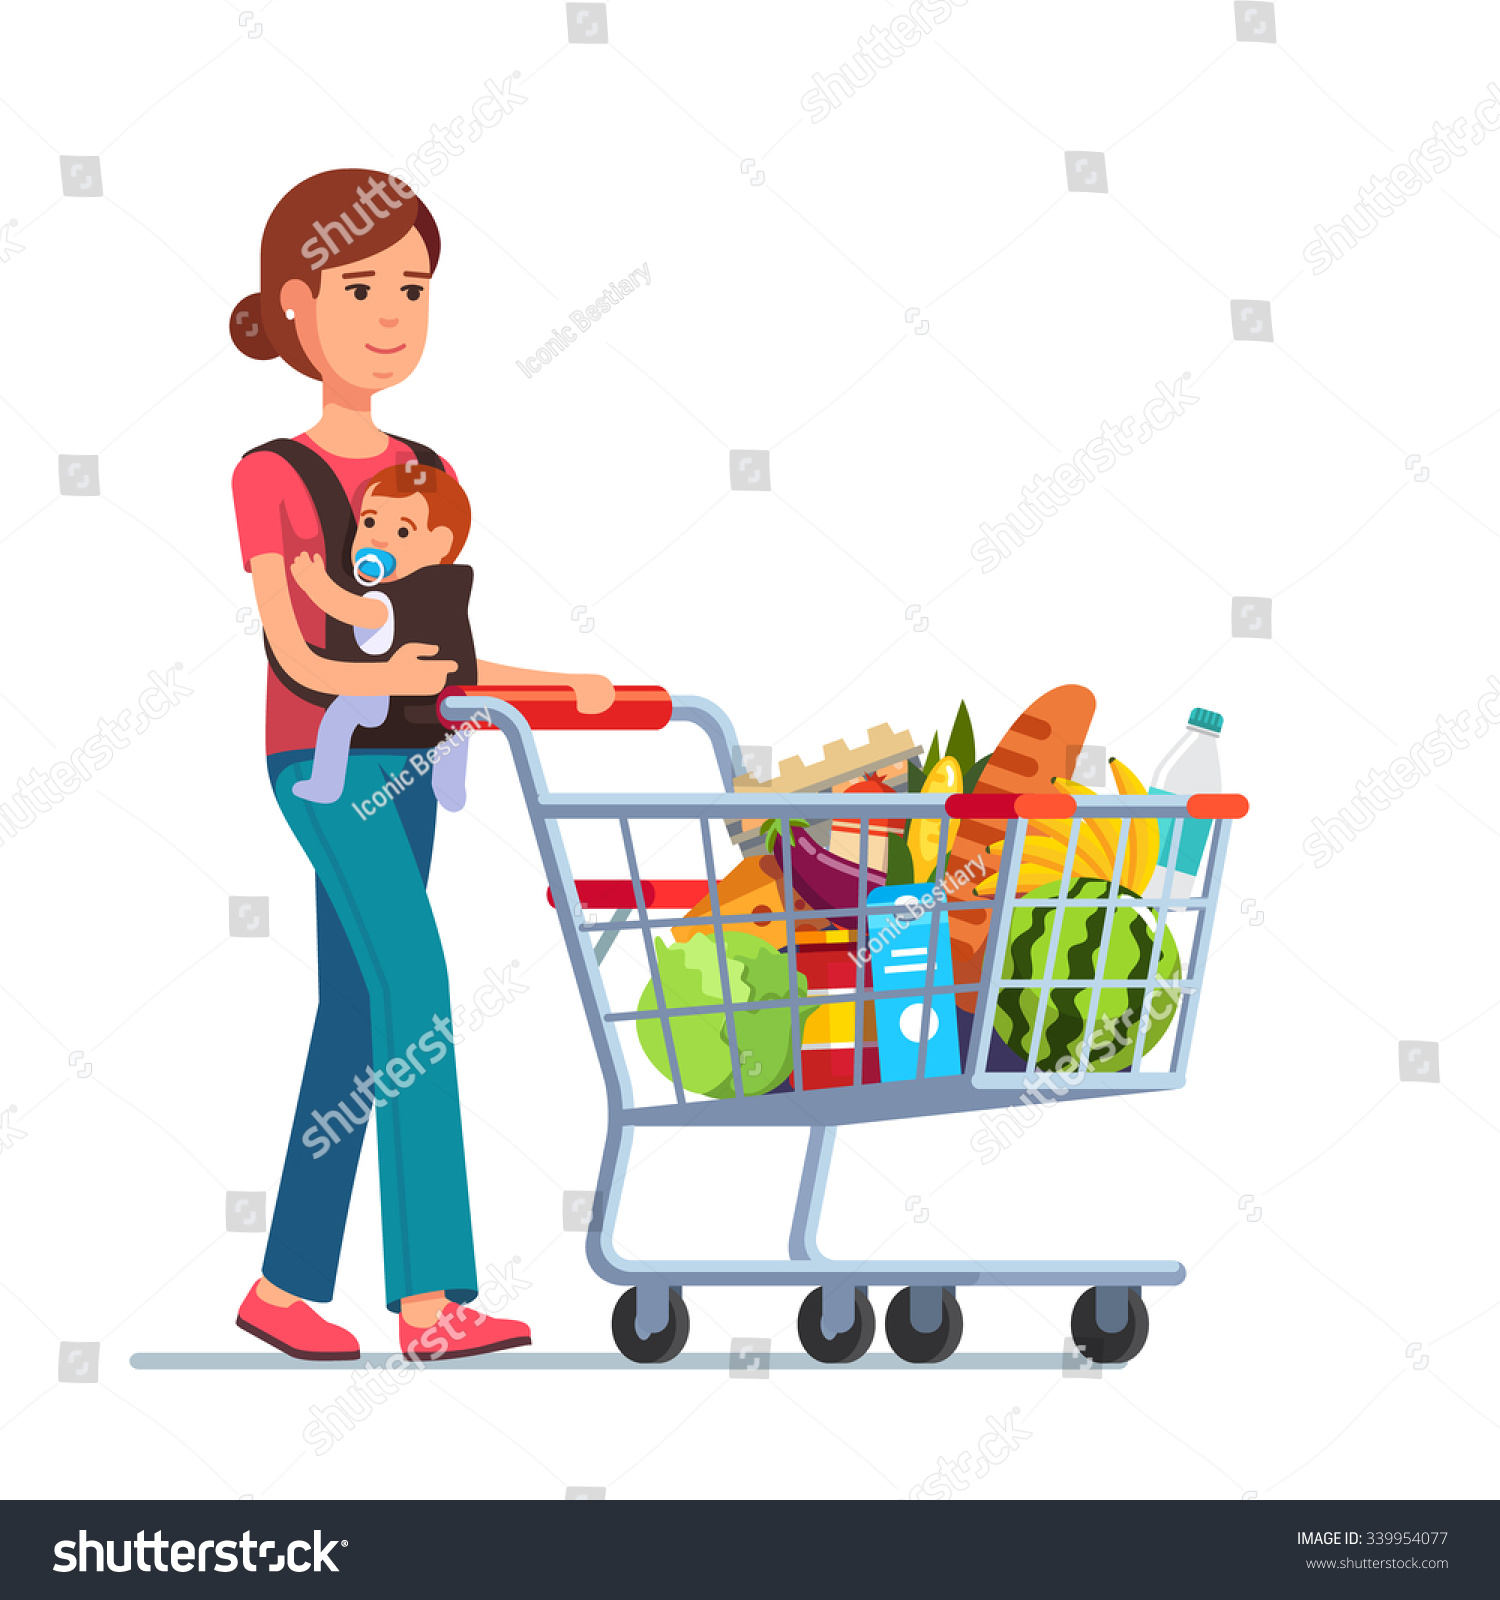 Image Gallery mom shopping clip art